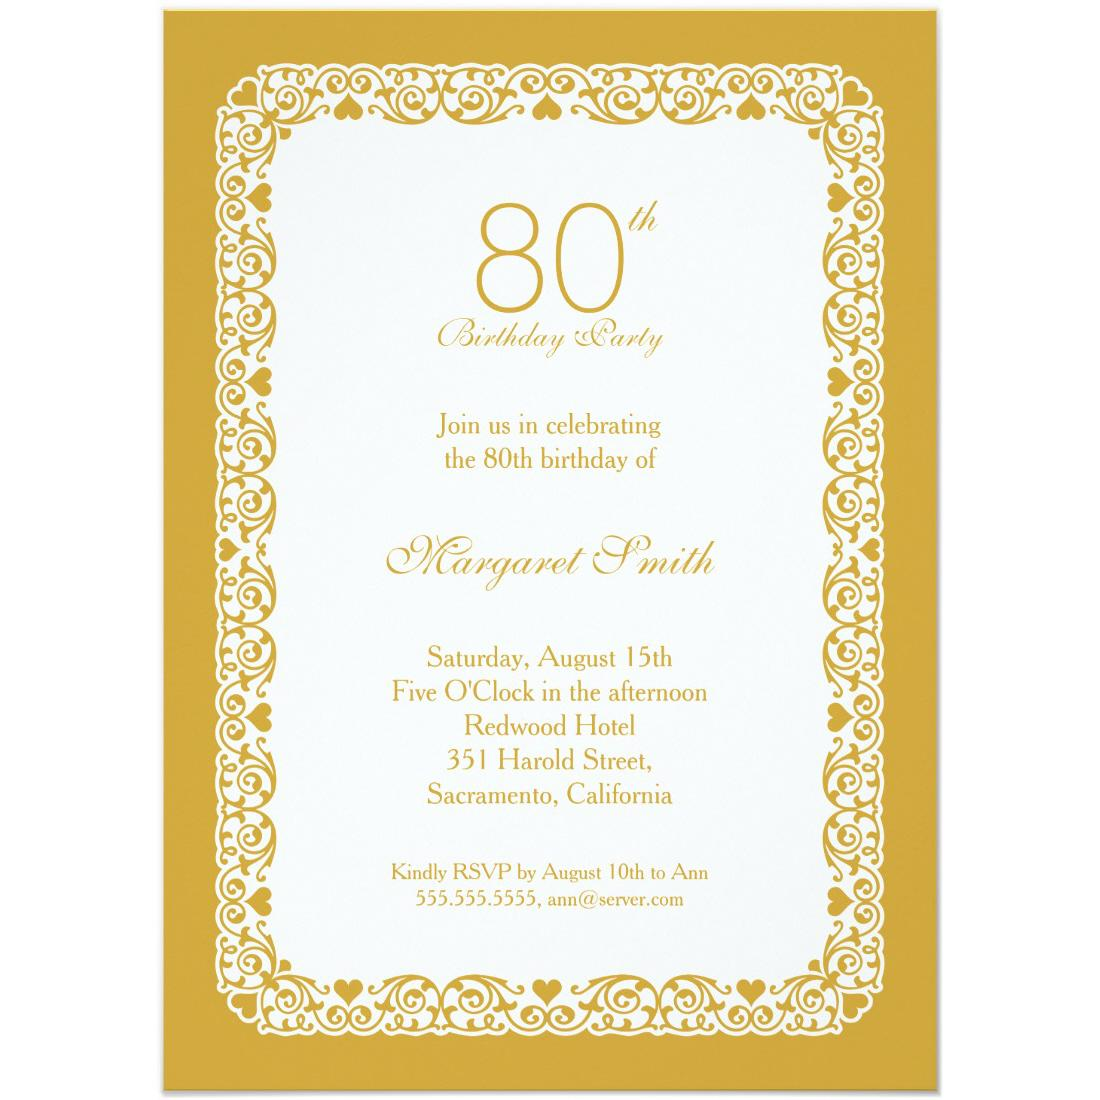 Sample Th Birthday Invitations Templates Ideas Free Sample - Elegant birthday invitation free templates